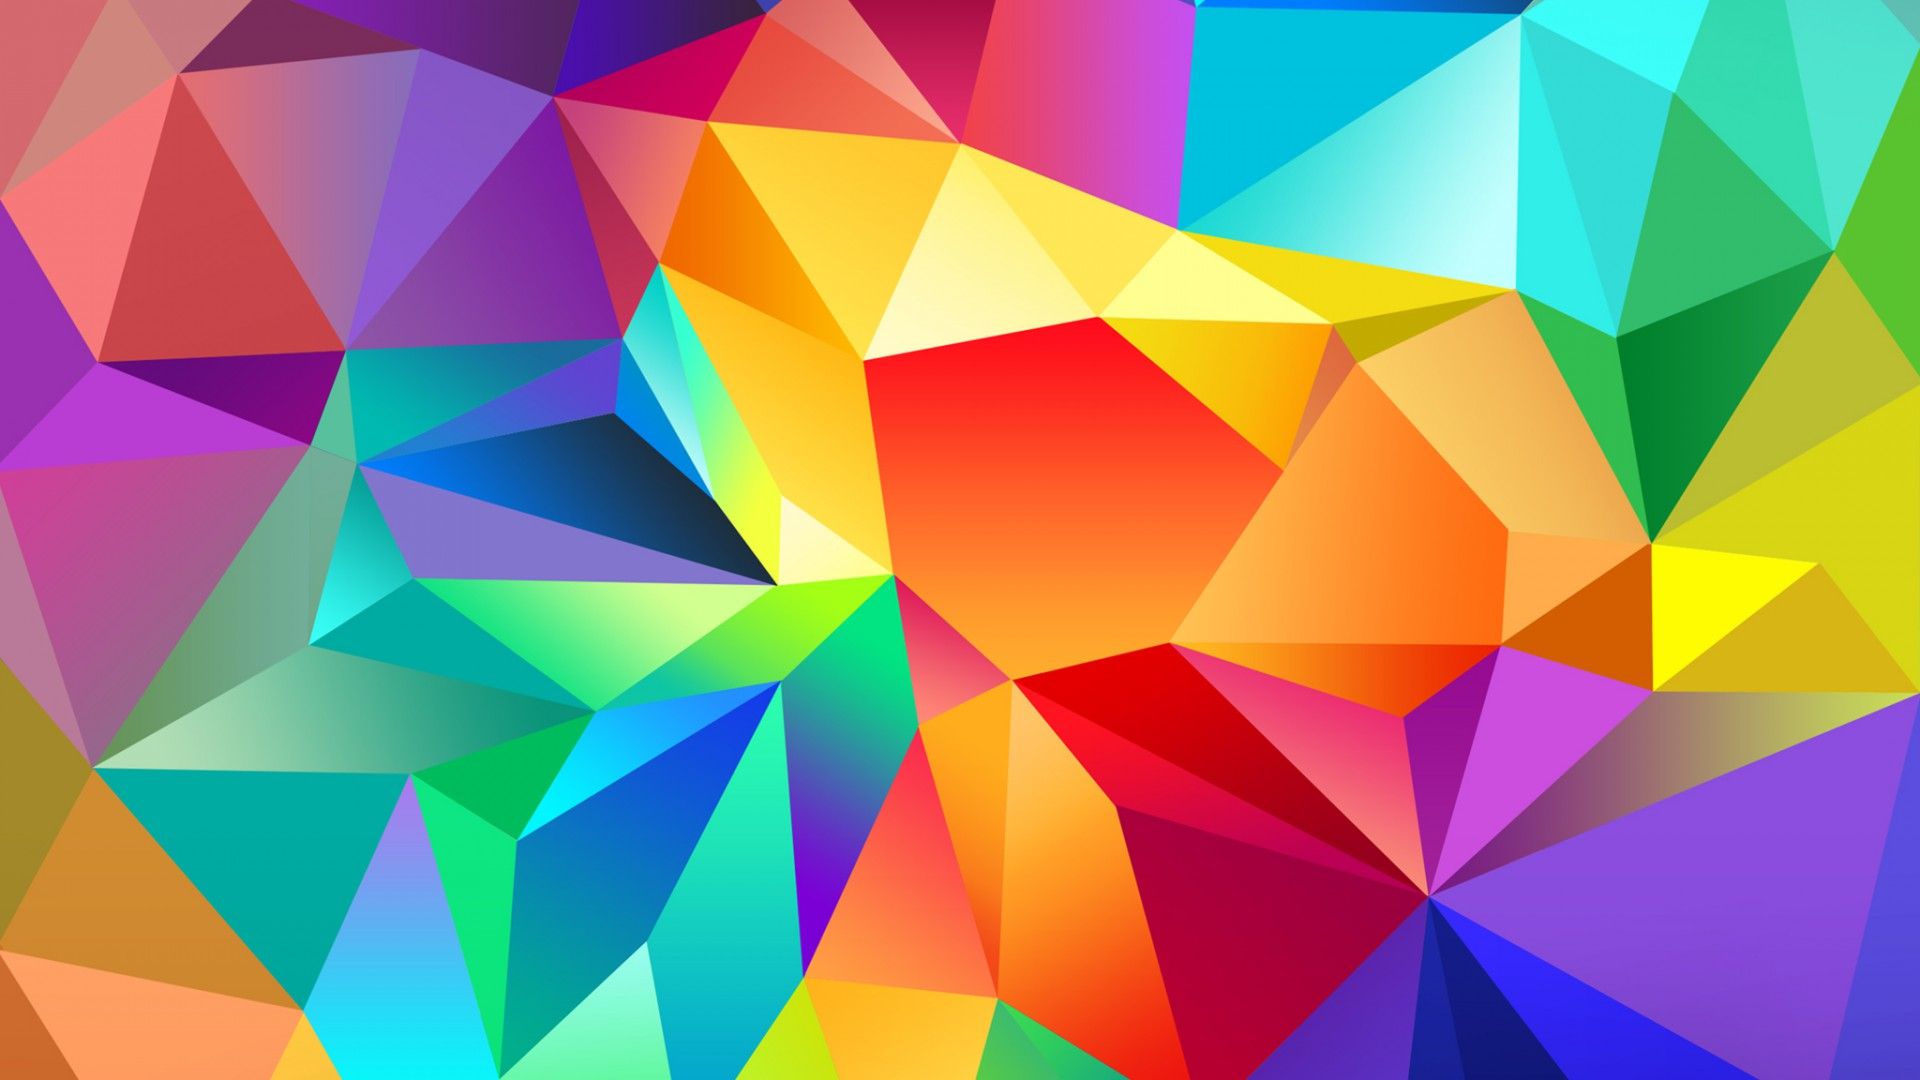 полигон, цветной, андроид, фон, polygon, android, wallpaper, triangle, background, orange, red, blue, pattern